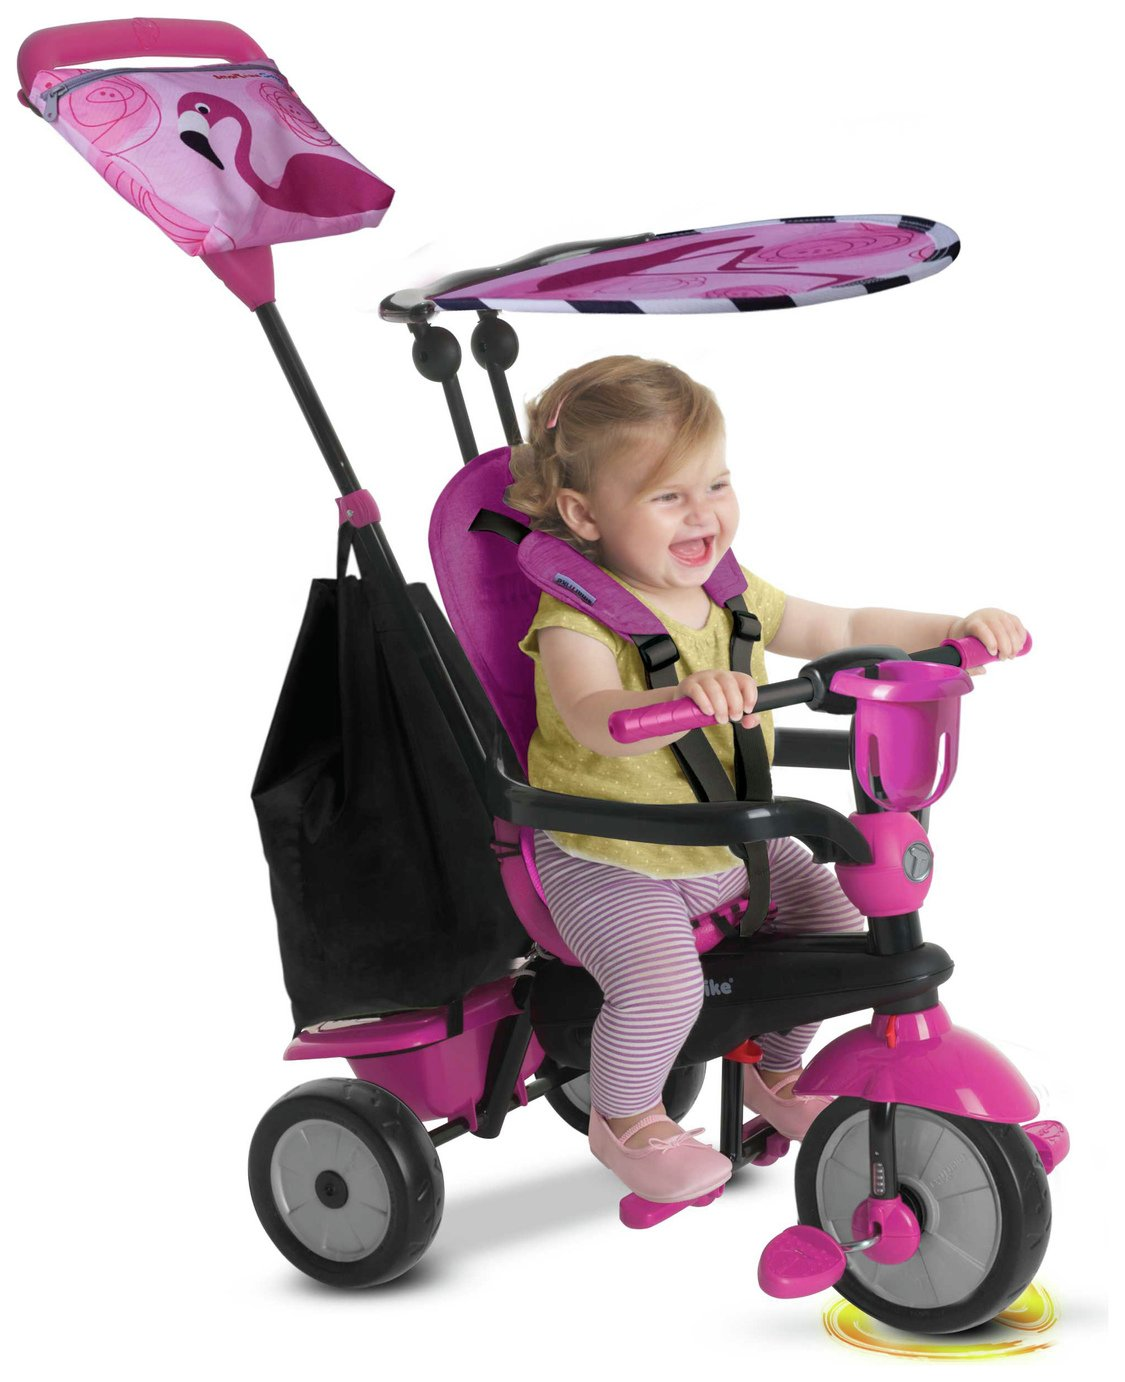 smarTrike Touch Steering 4-in-1 Safari Ride On - Flamingo